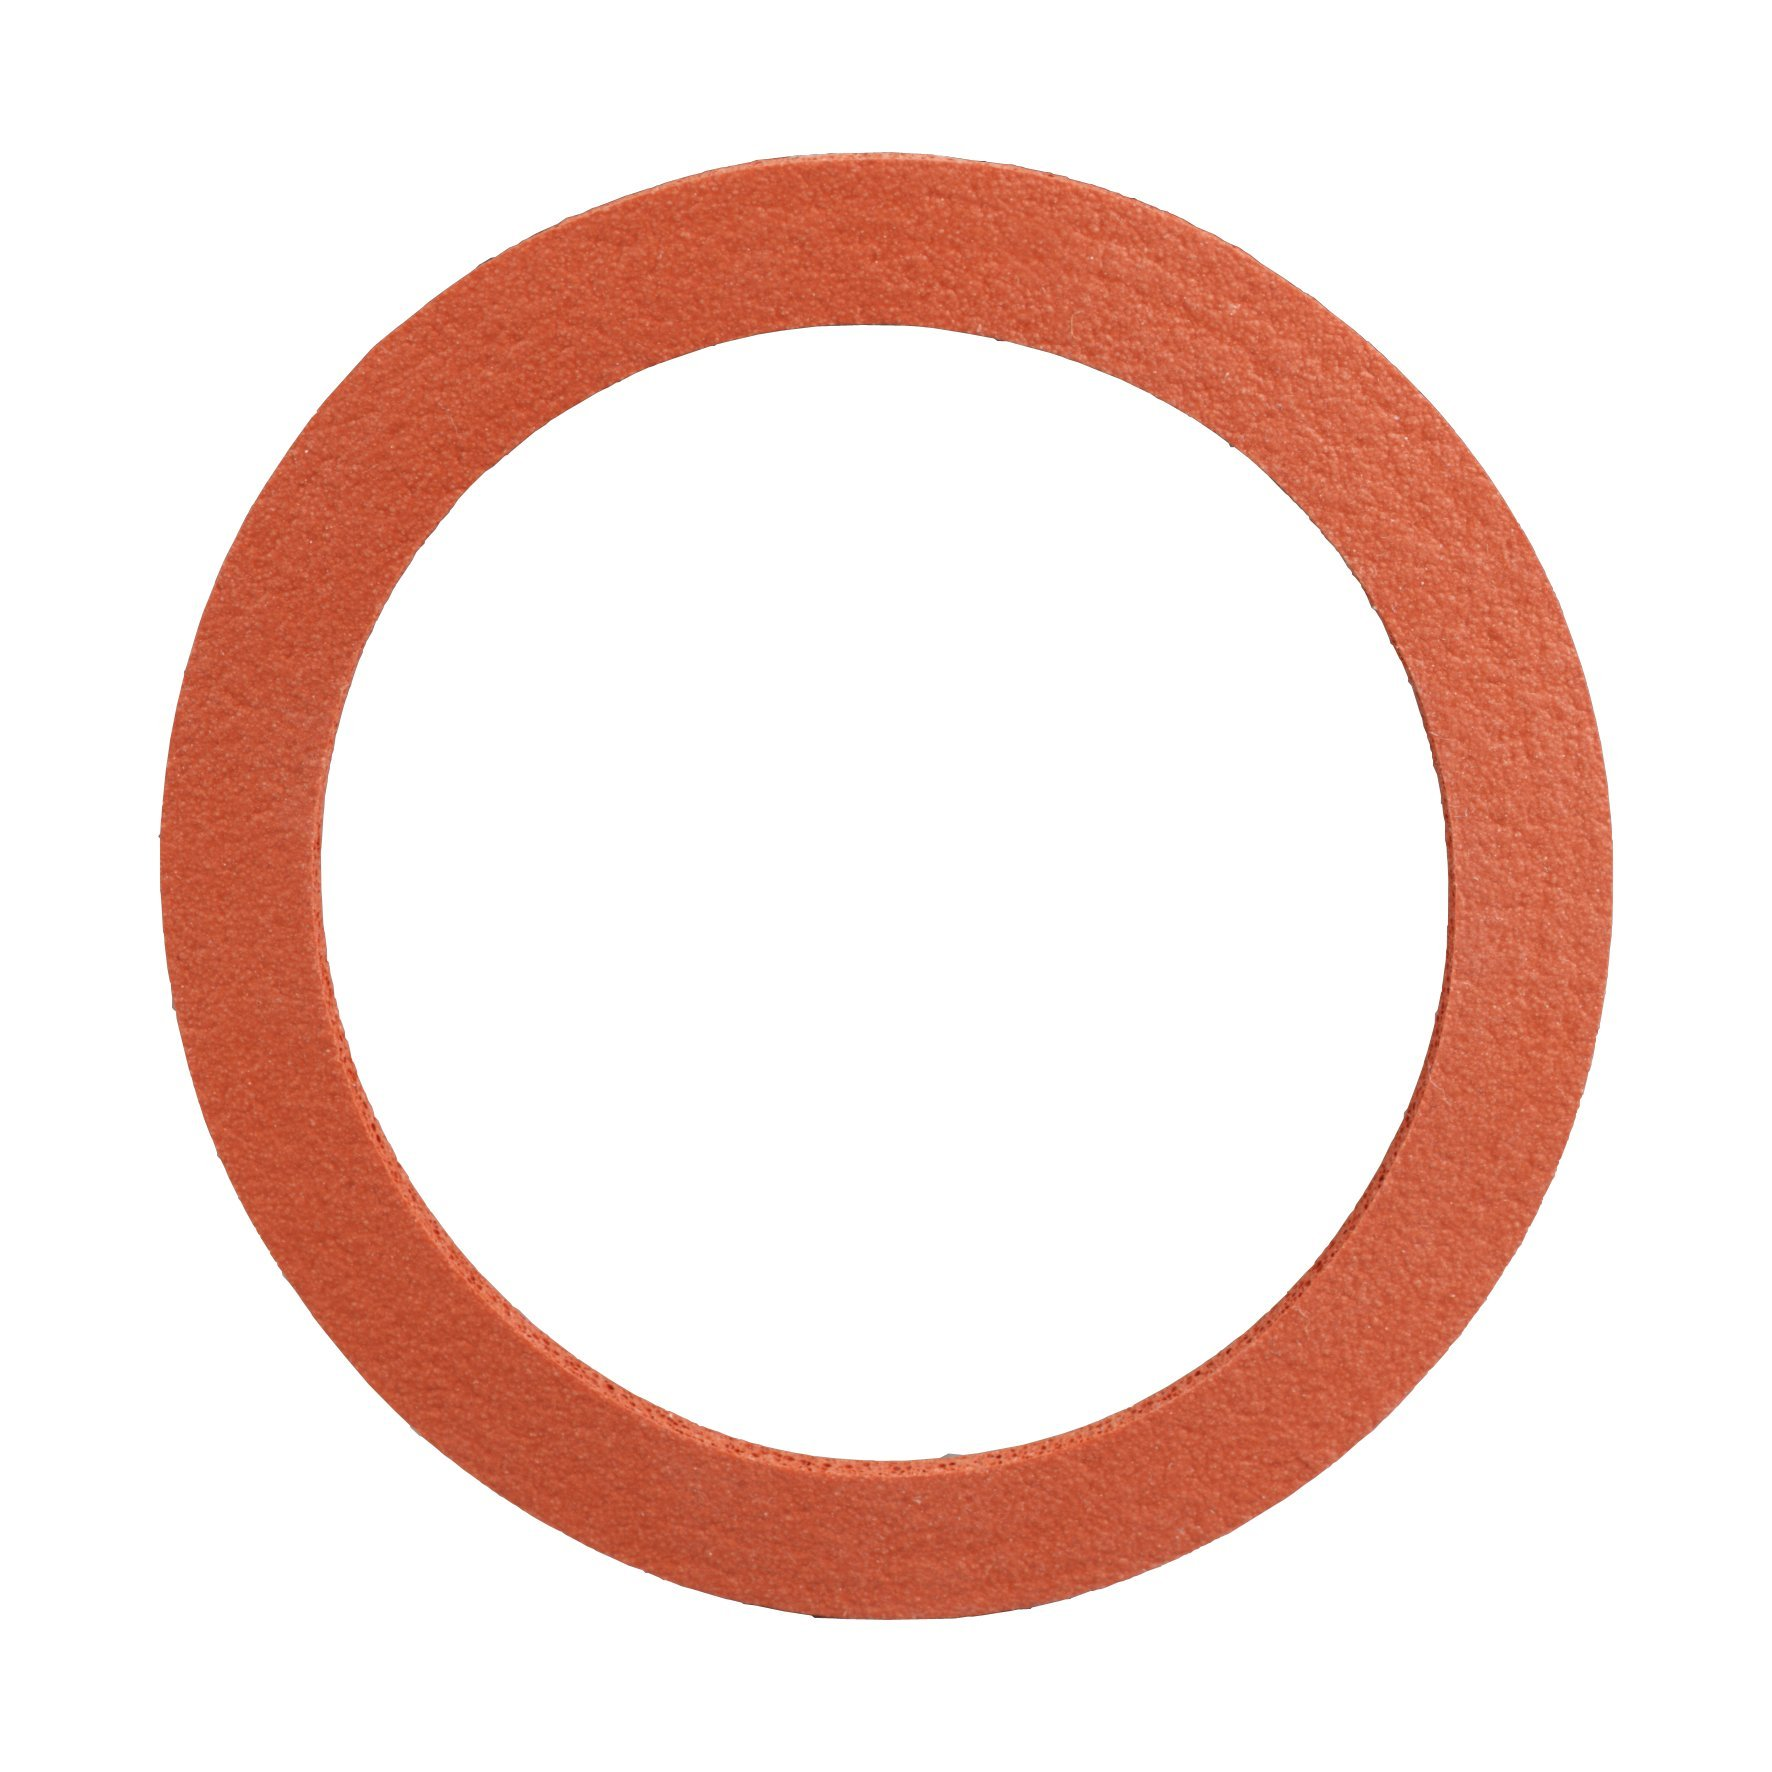 3M Center Adapter Gasket 6896, Respiratory Protection Replacement Part  (Pack of 5) by 3M Personal Protective Equipment